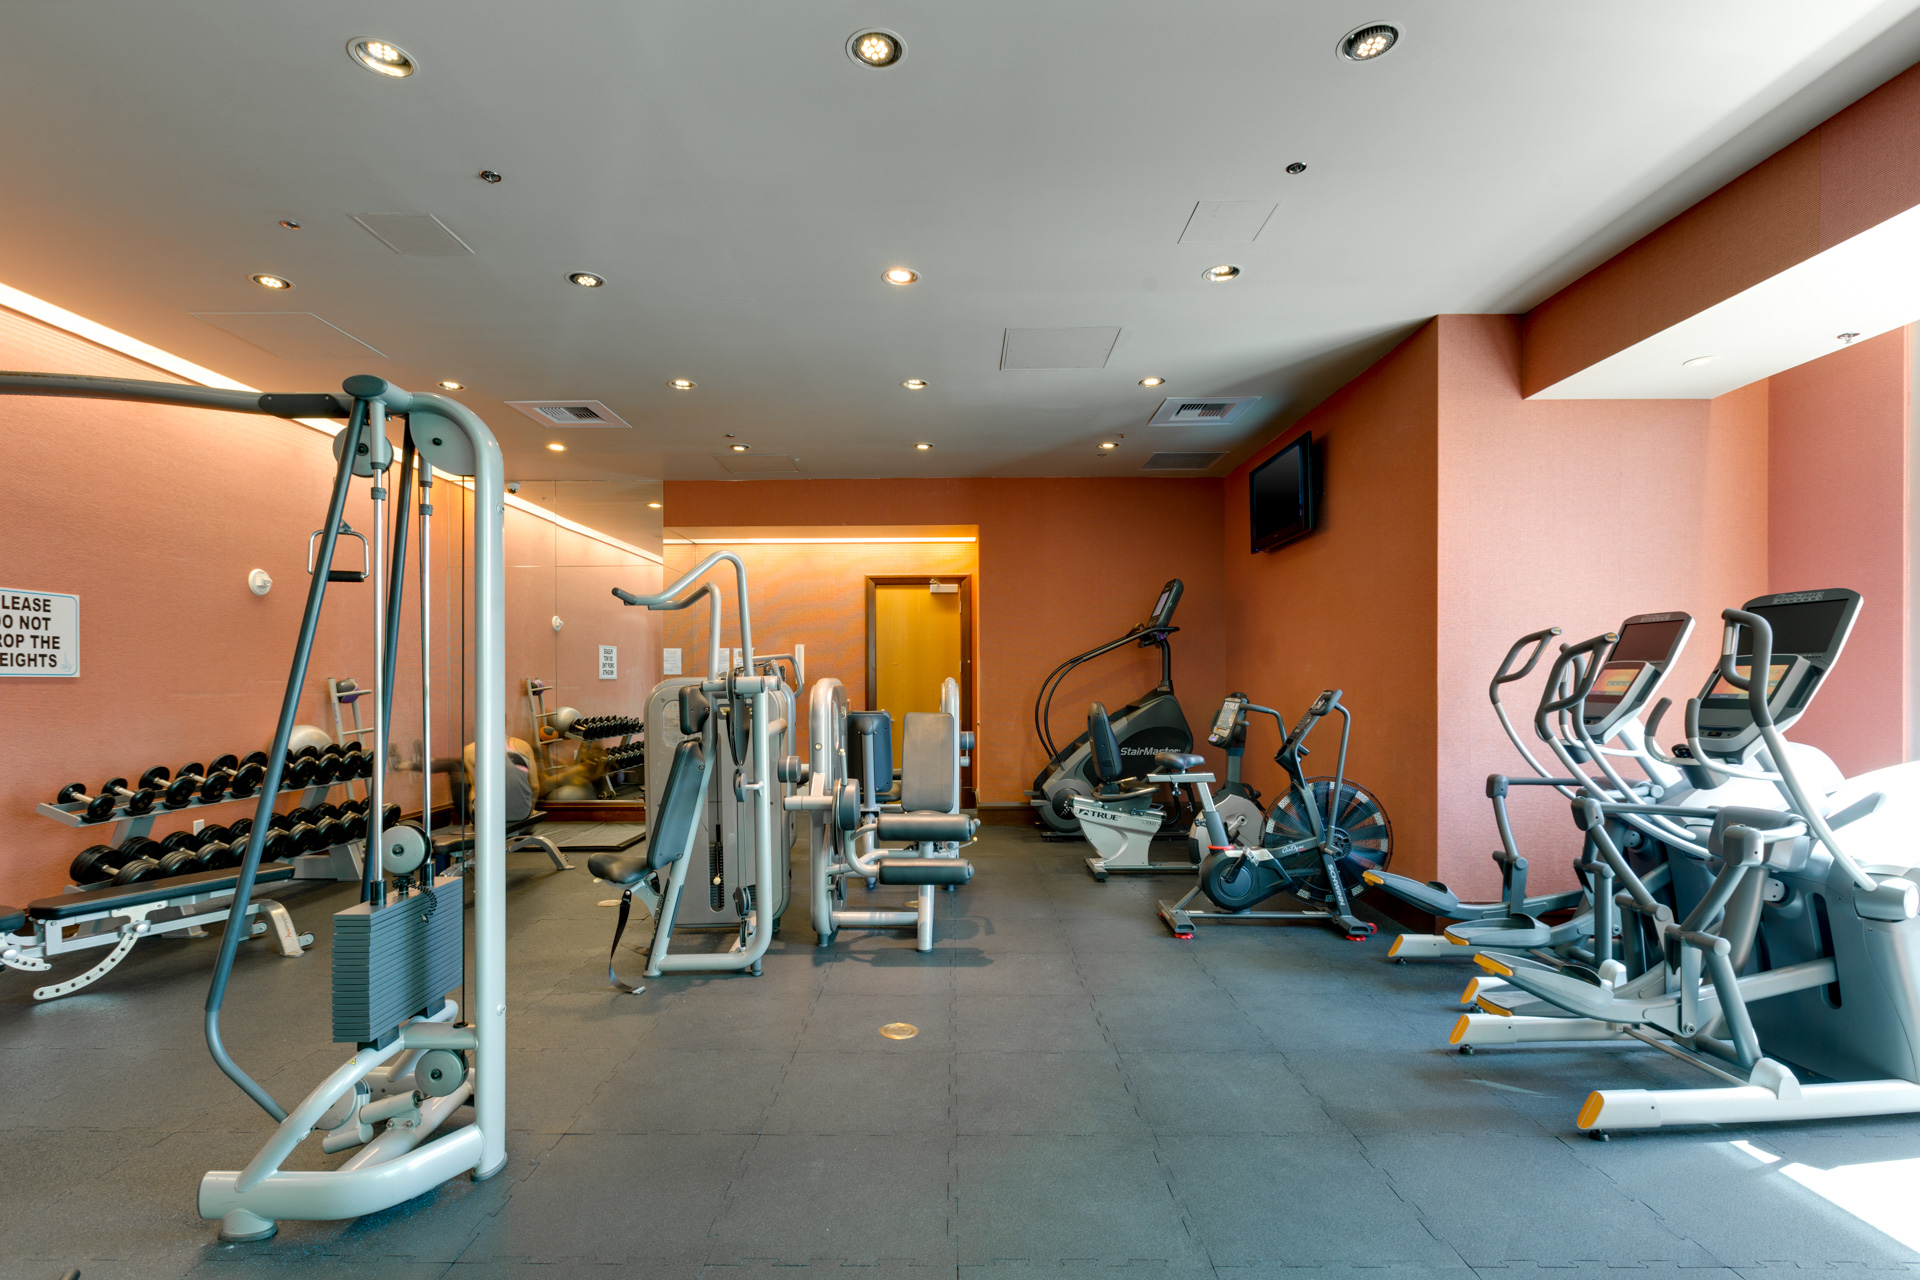 sky las vegas indoor gym amenities